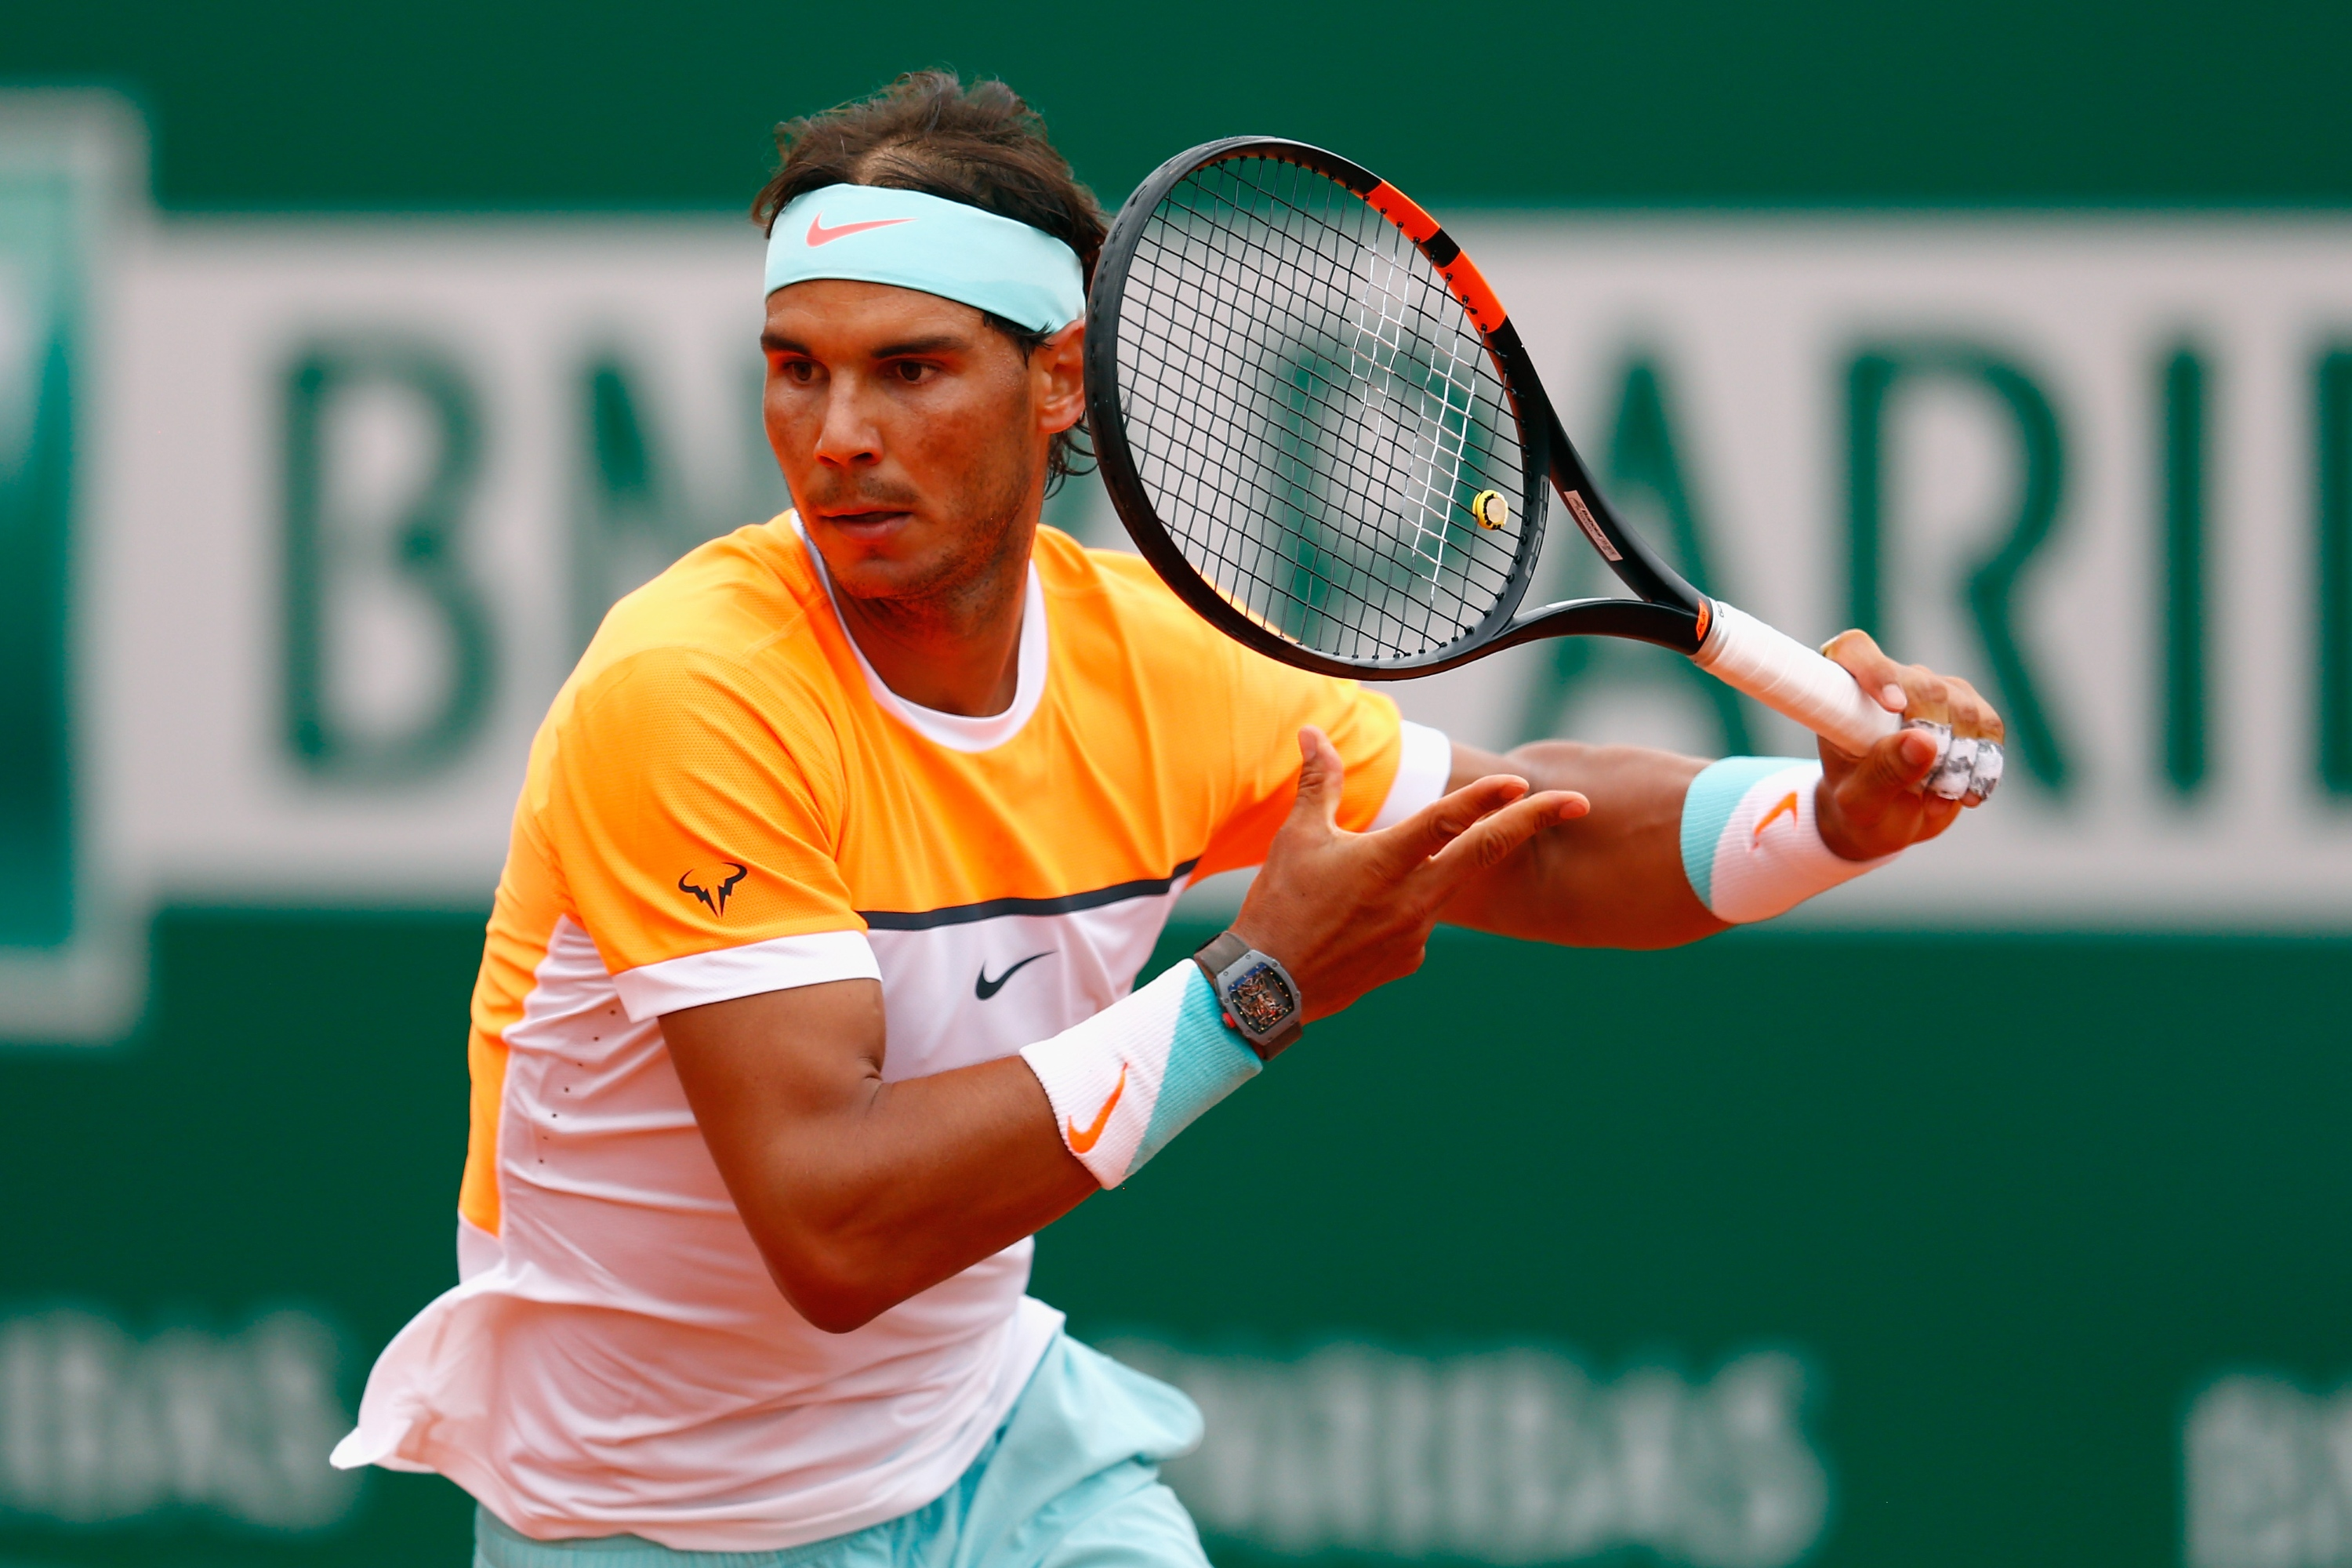 http://www.hdwallpaper.nu/wp-content/uploads/2015/08/rafael-nadal-beat-lucas-pouille-to-reach-third-round-in-monte-carlo-5.jpg